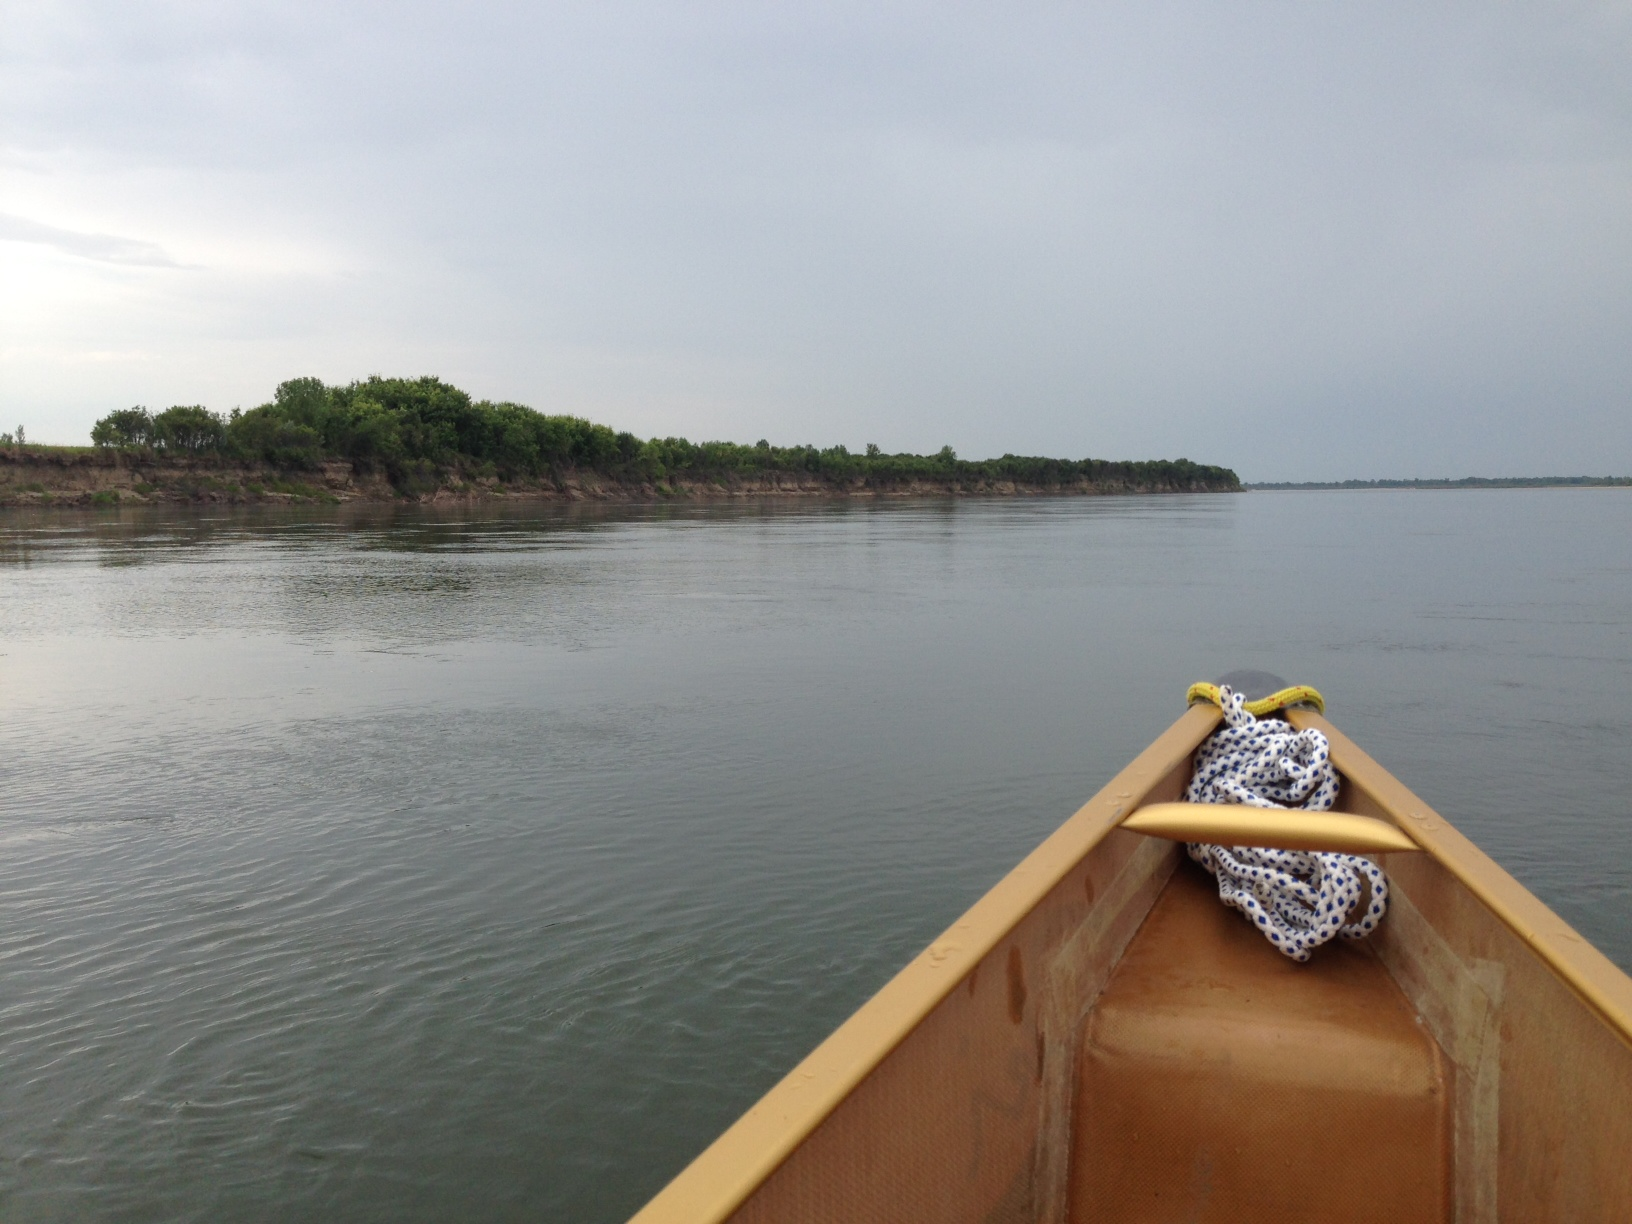 The folks at Canoeski can take on a tranquil canoe ride on the S. Saskatchewan River.